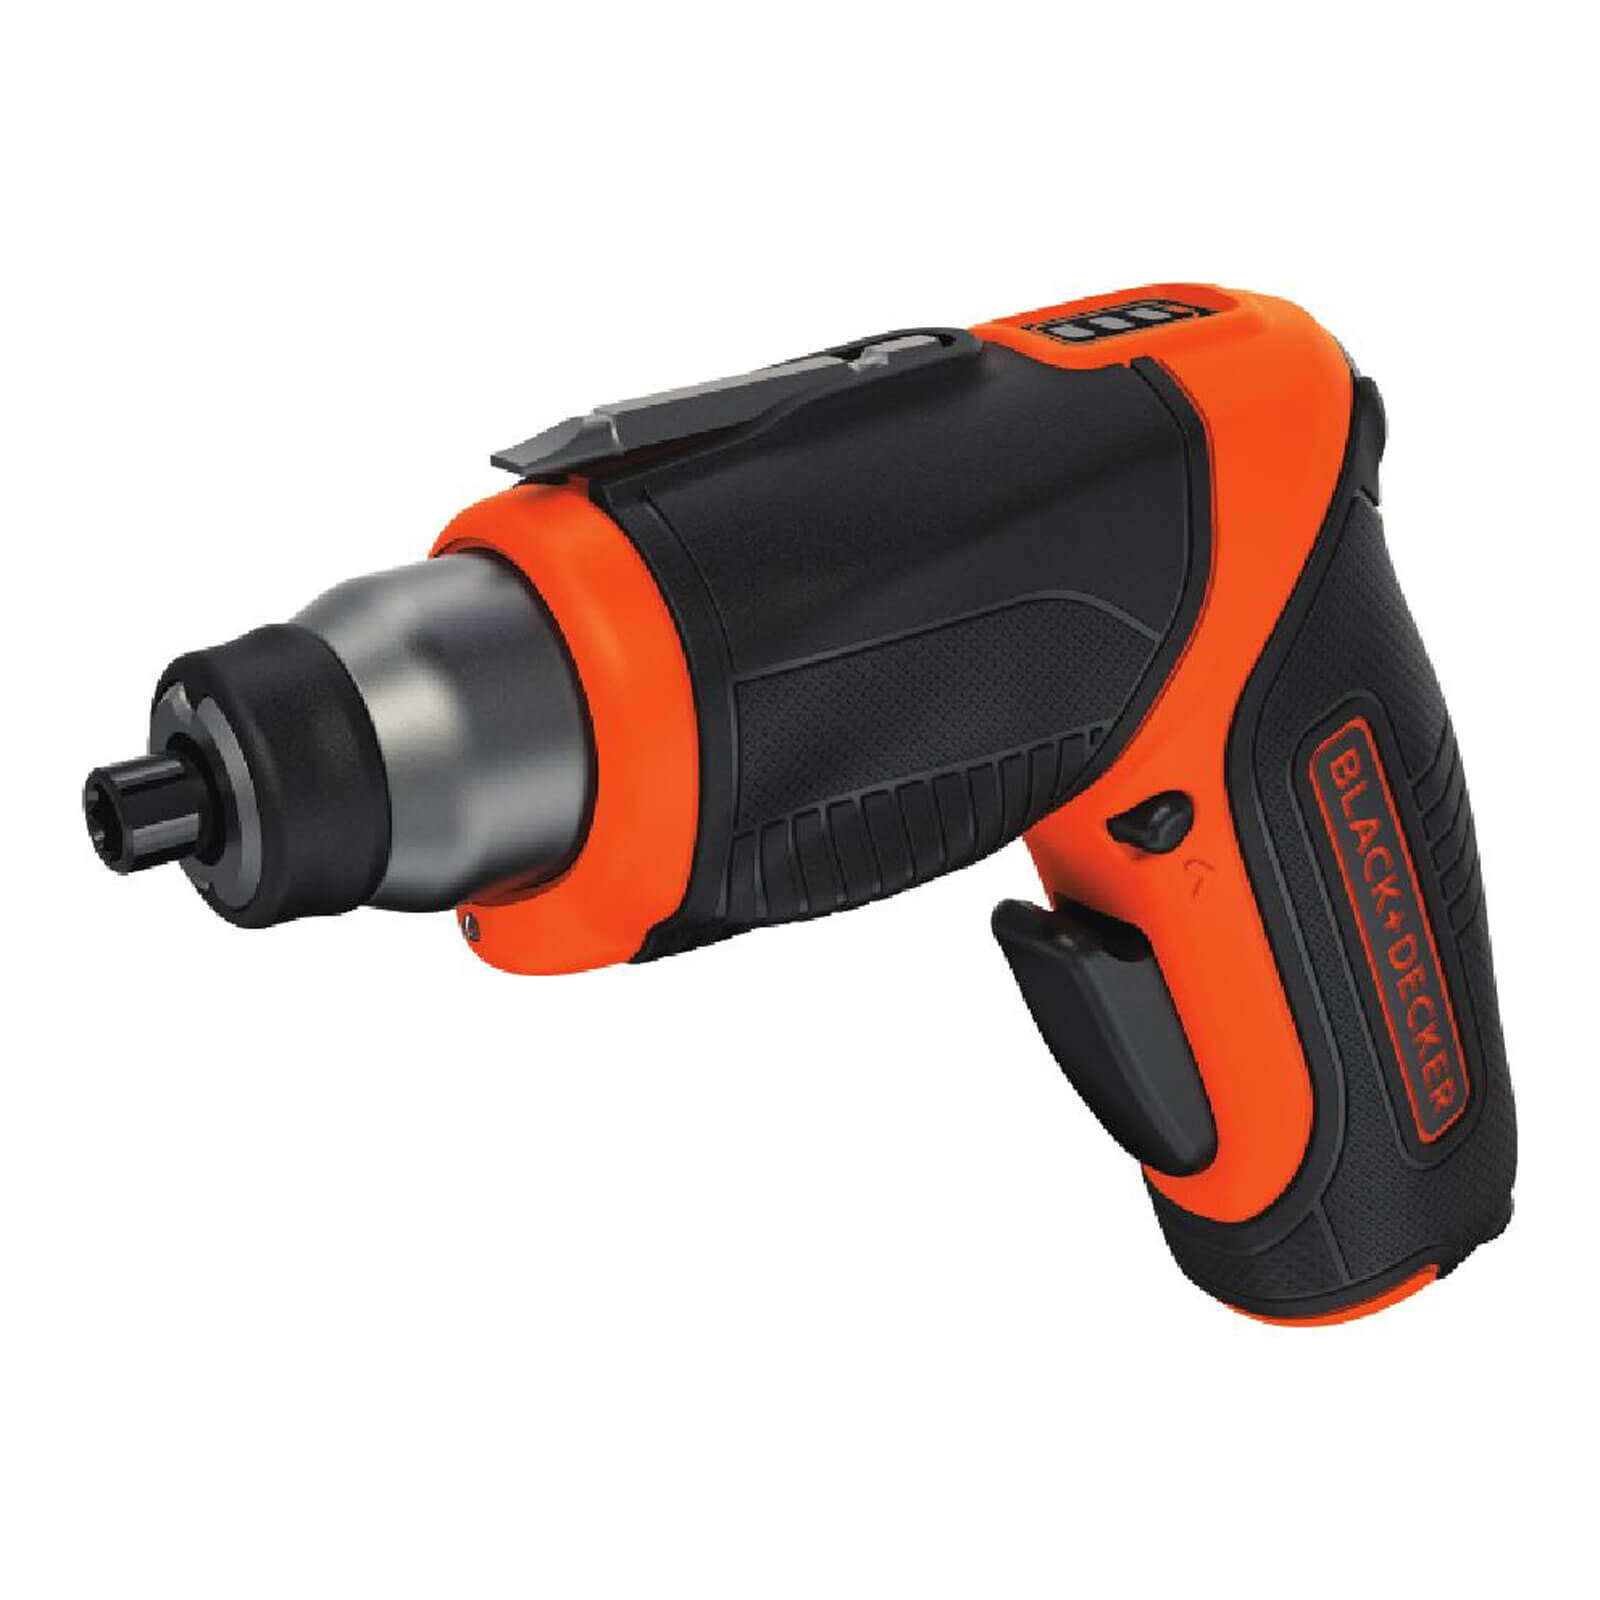 black decker cordless screwdriver cordless screwdriver drill product reviews and price comparison. Black Bedroom Furniture Sets. Home Design Ideas